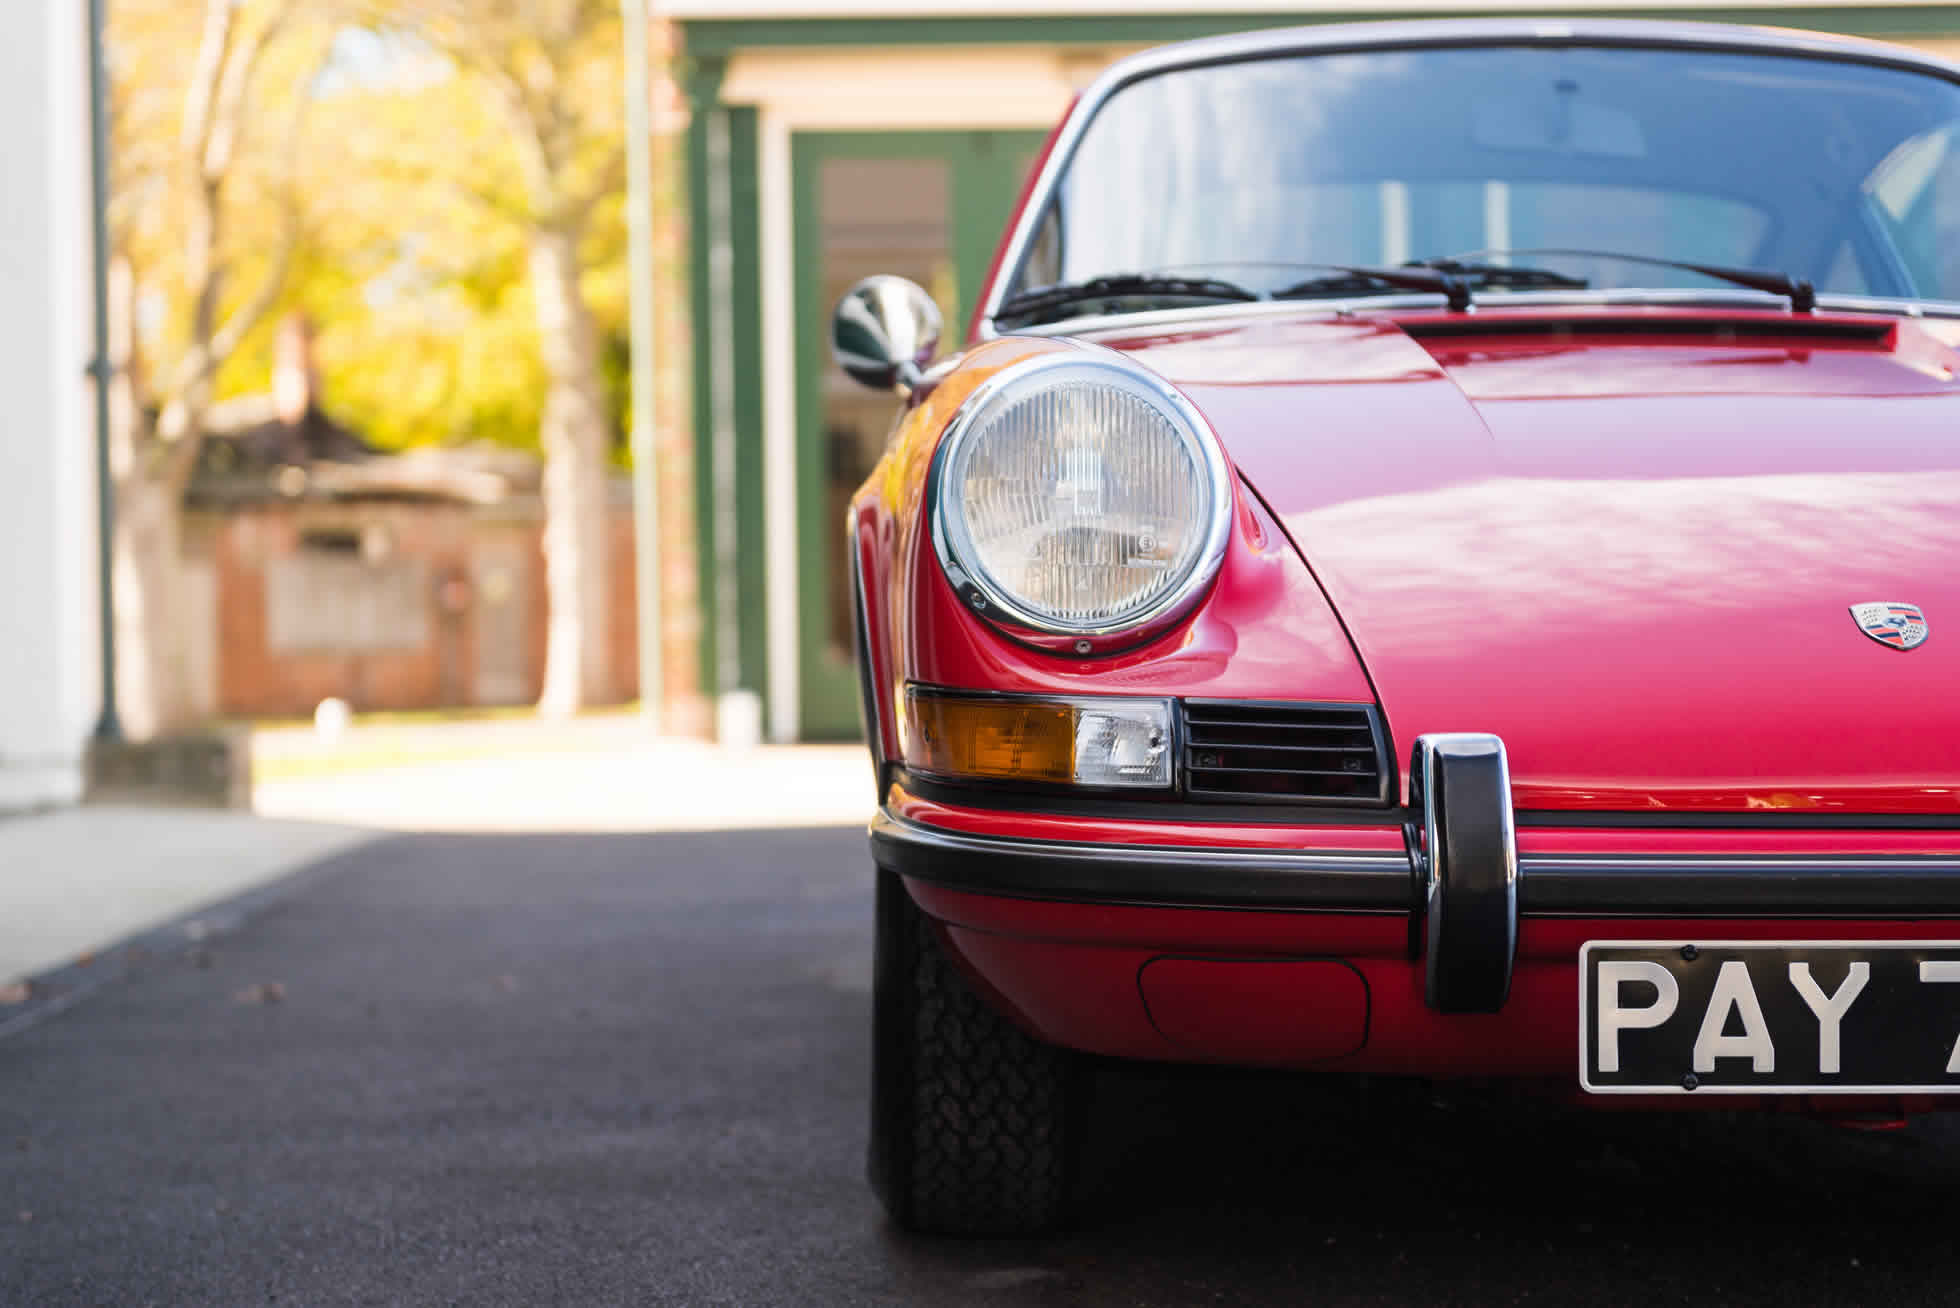 For Sale 1973 Porsche 911 T 2.4 front view